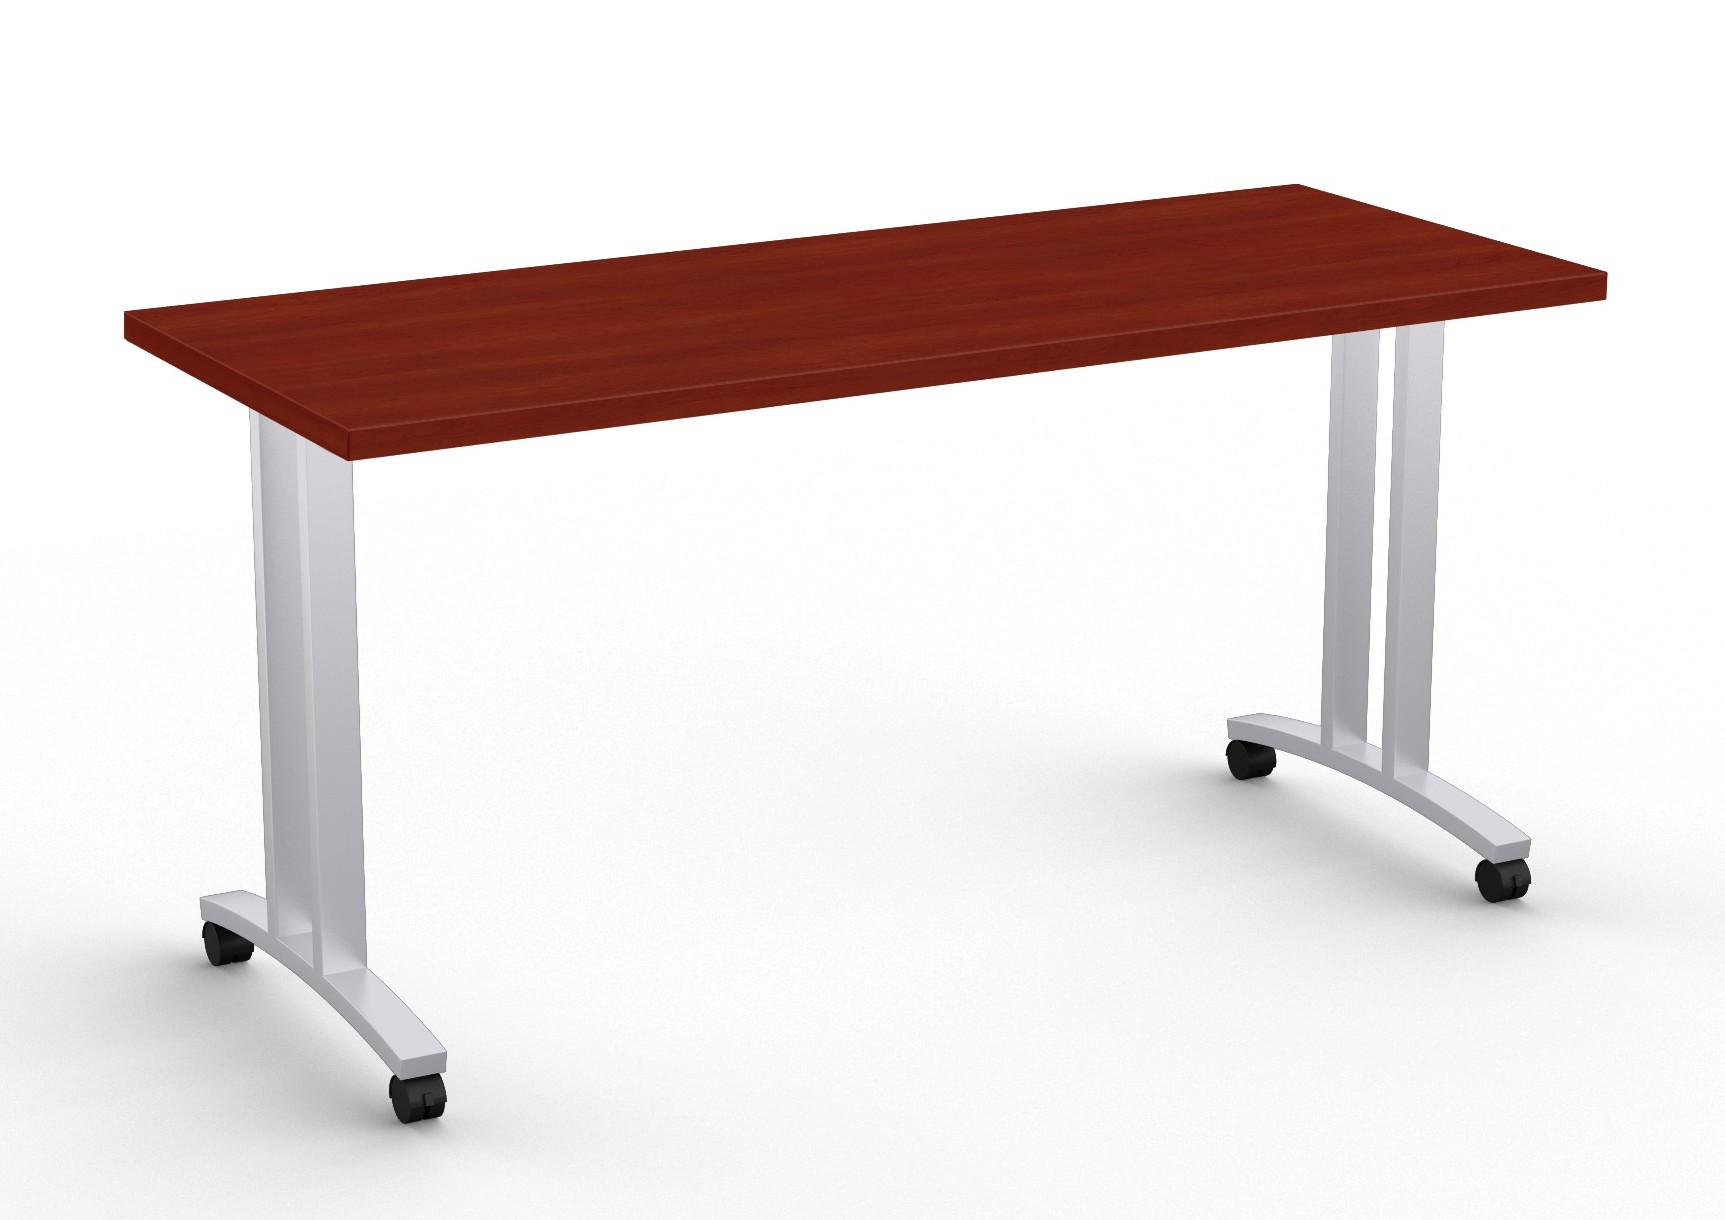 special-t structure t leg training table in cherry